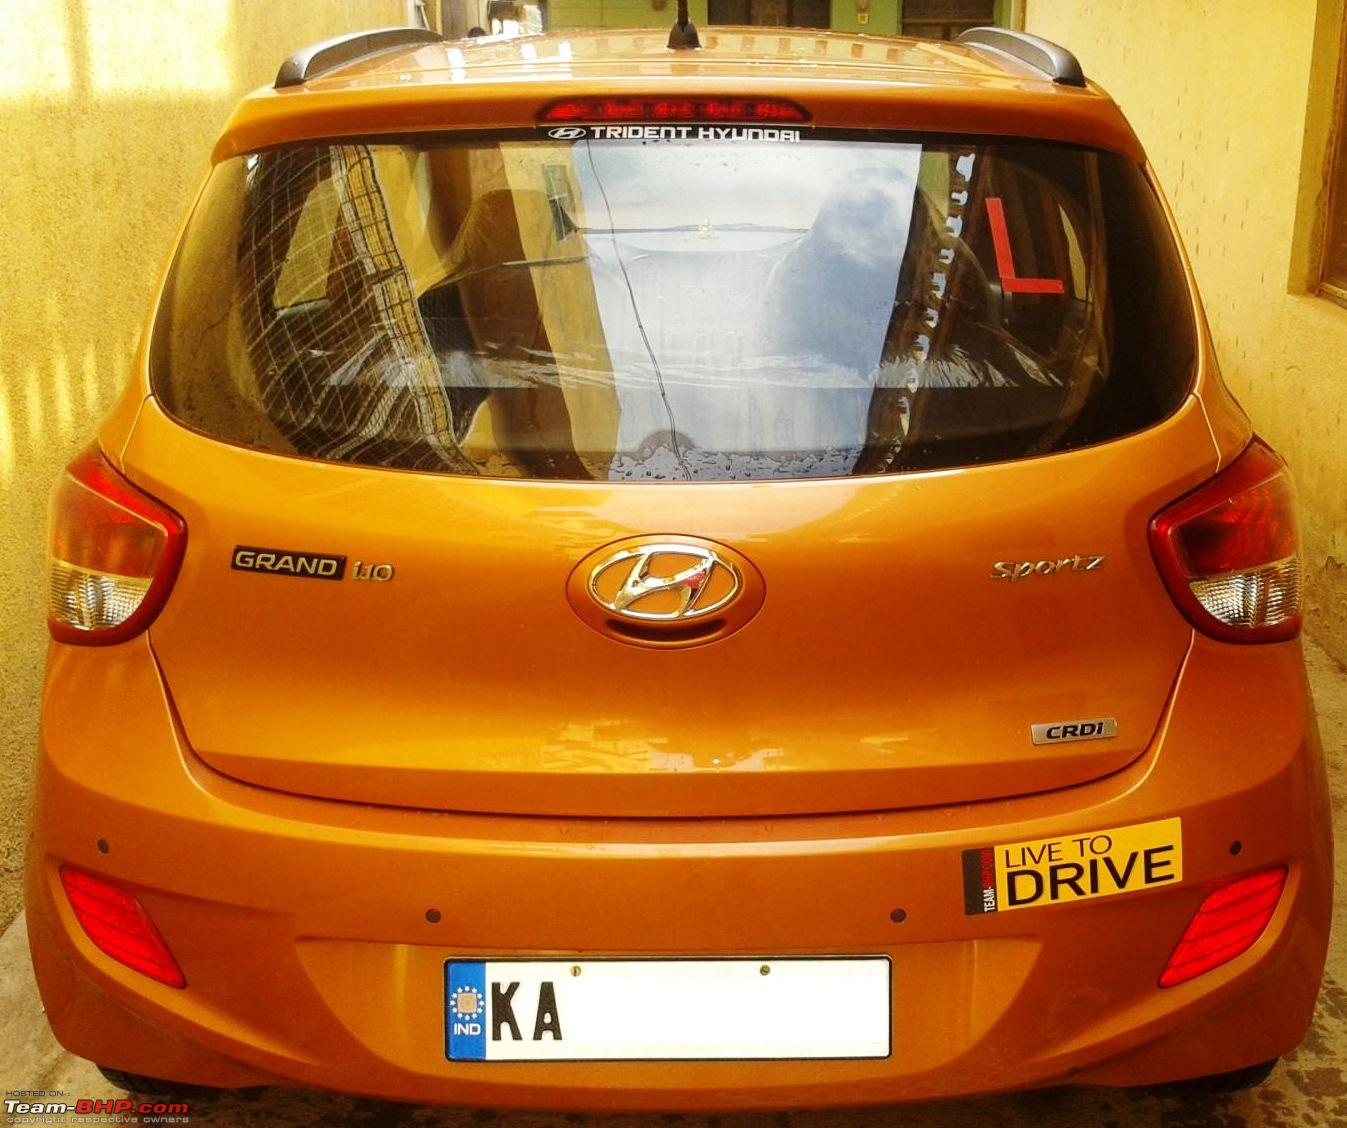 Hyundai grand i10 crdi sportz my ownership review 201312292009_11_31 jpg